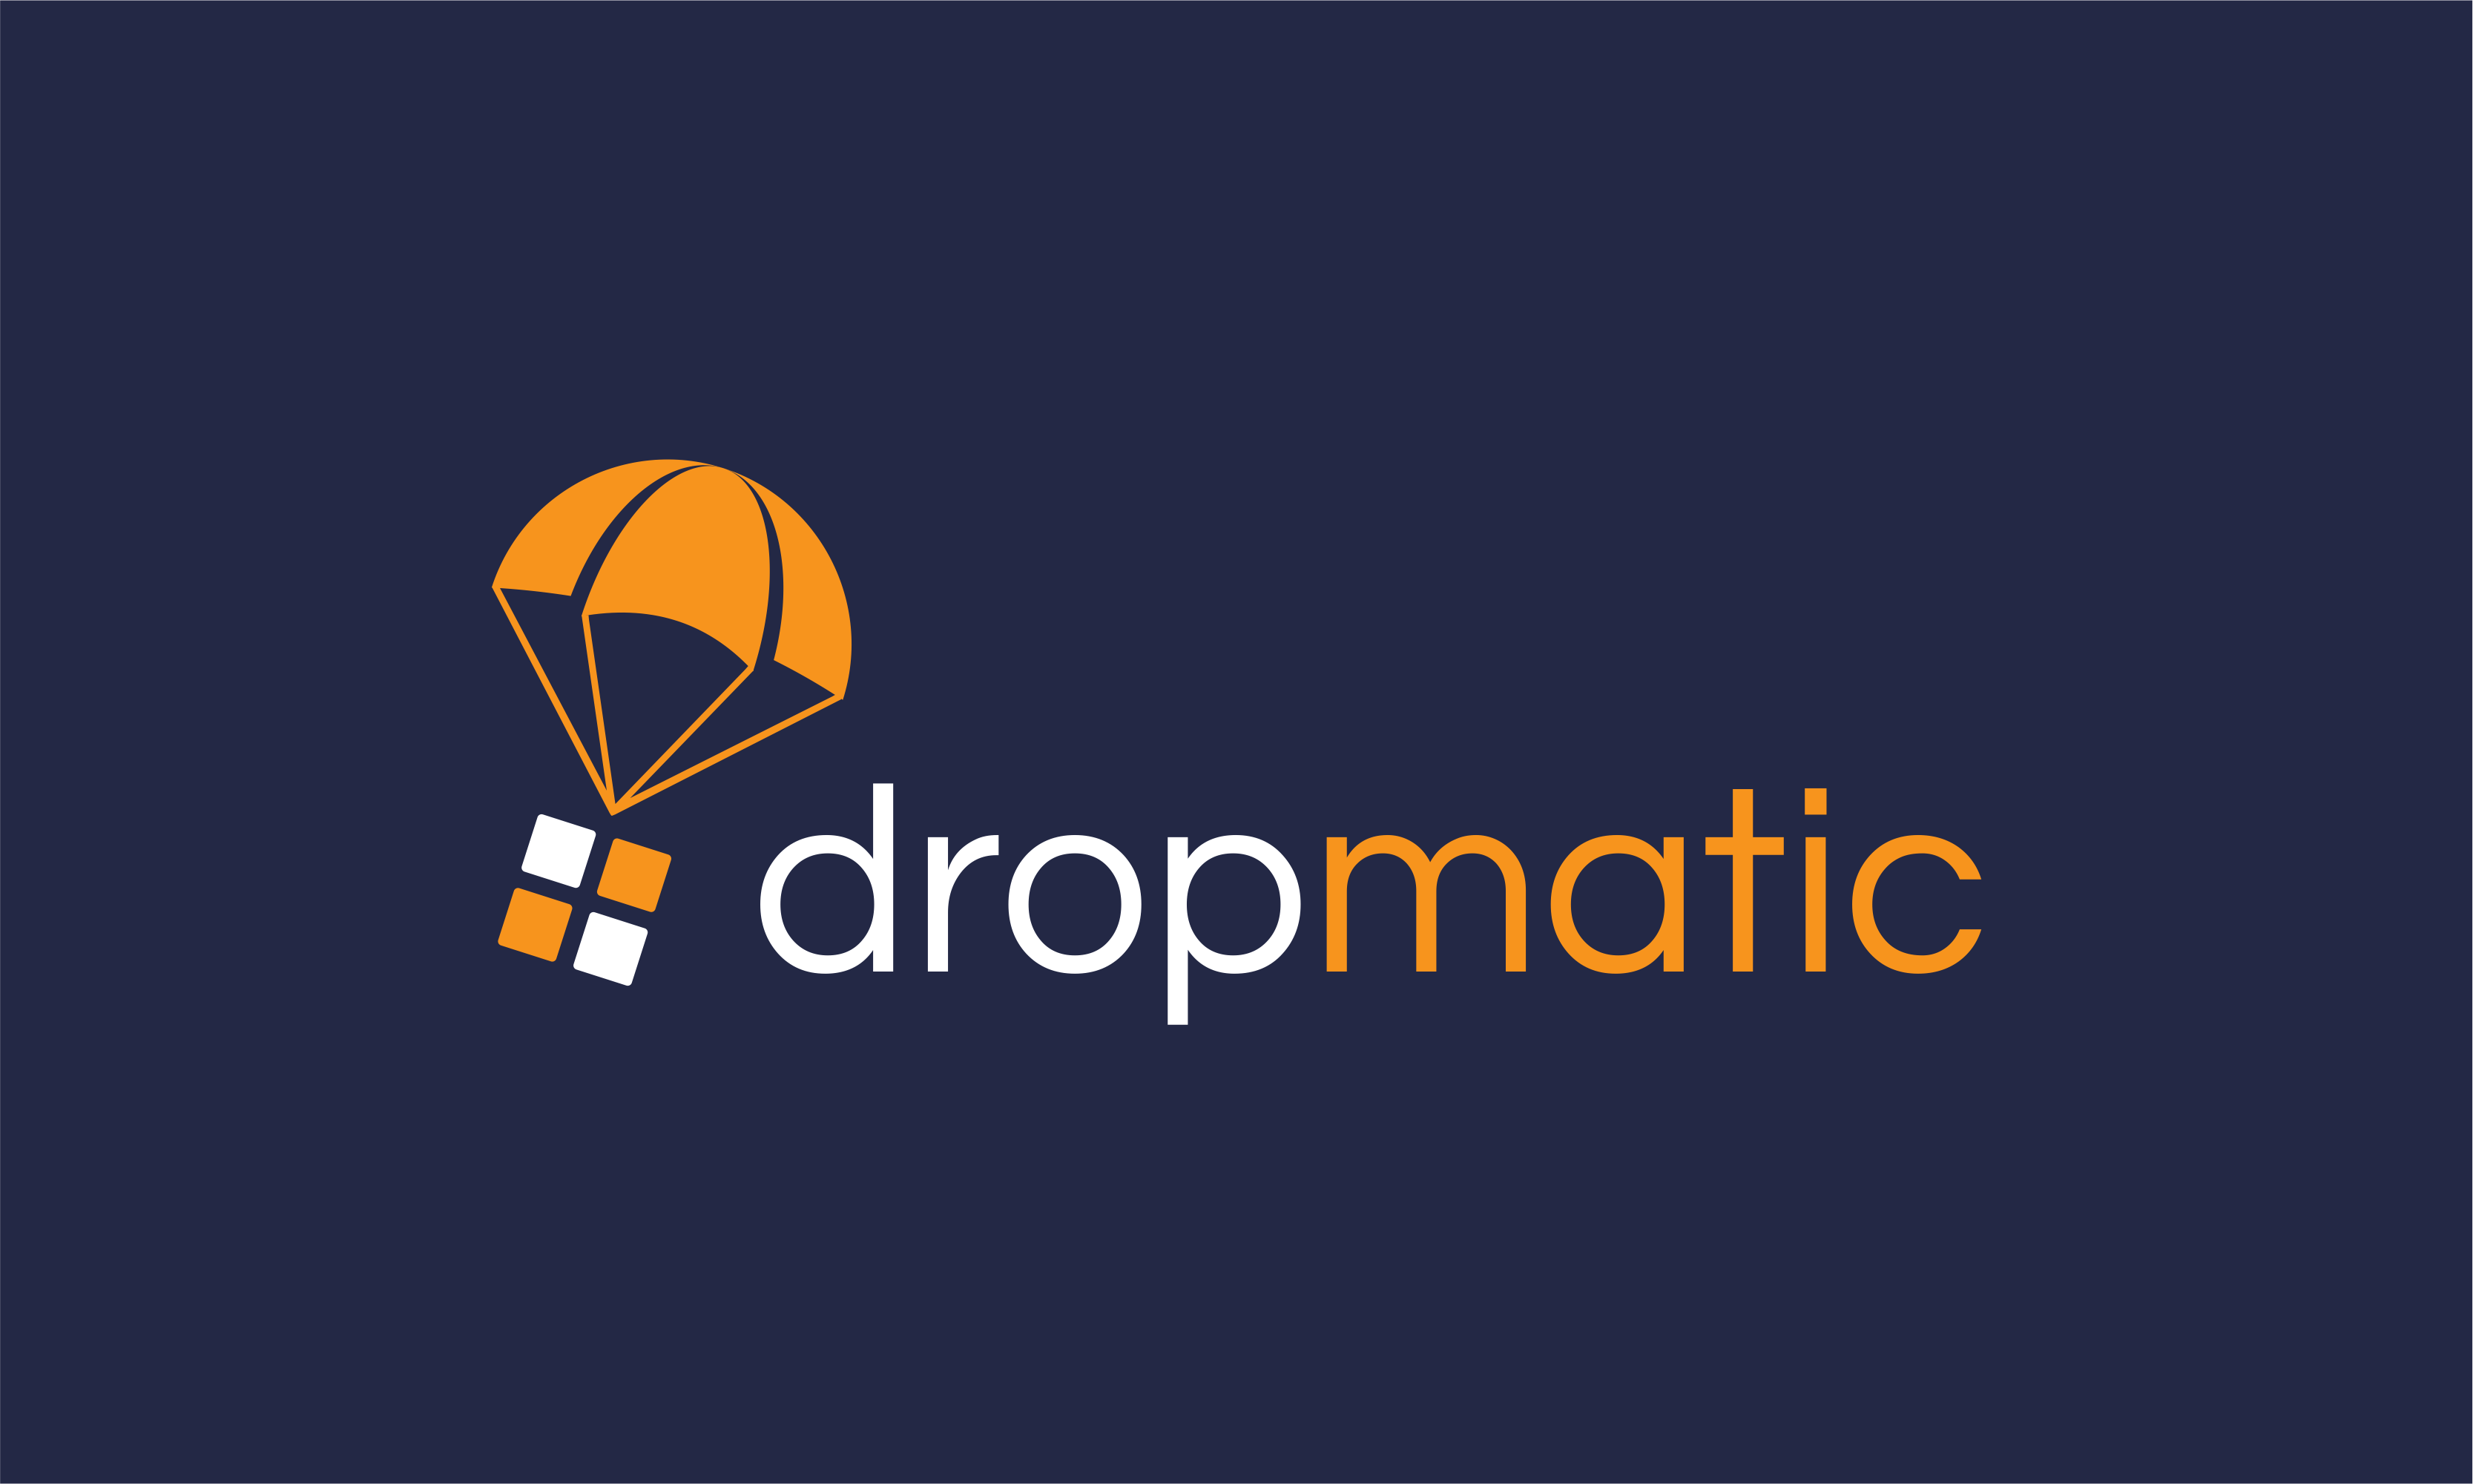 Dropmatic